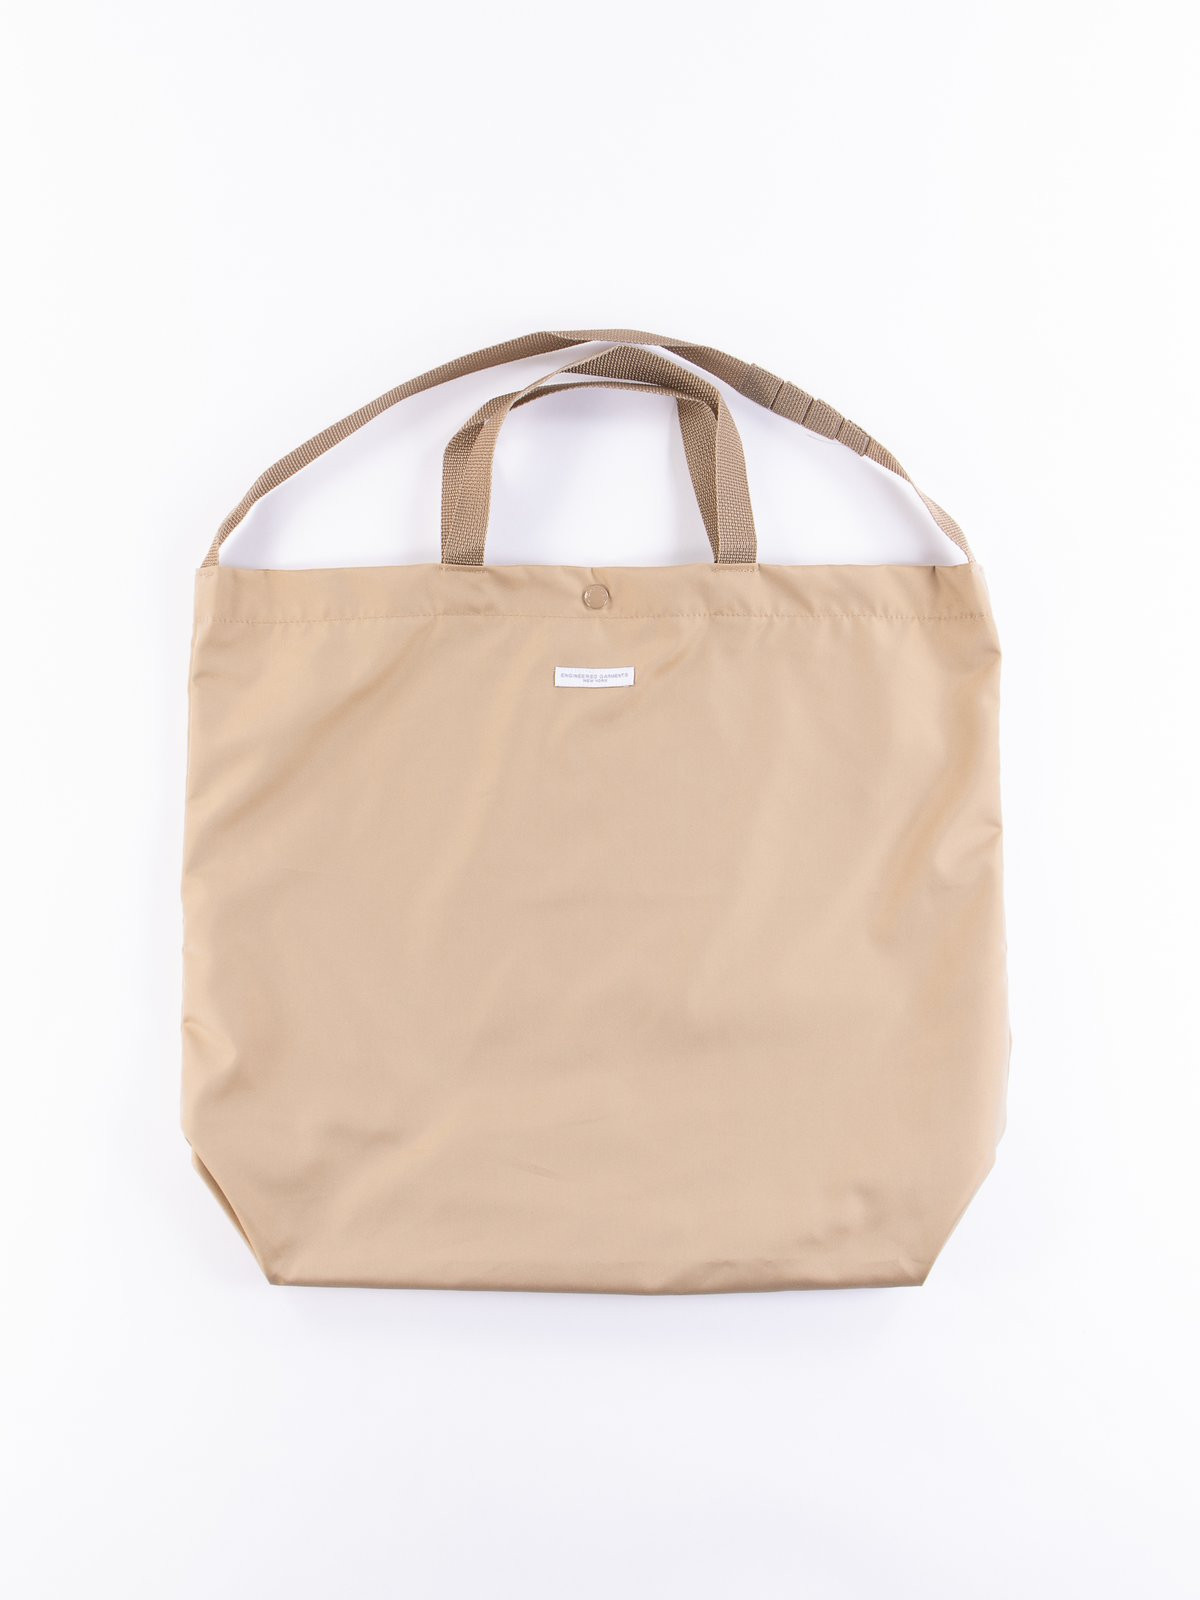 Khaki PC Iridescent Twill Carry All Tote - Image 1